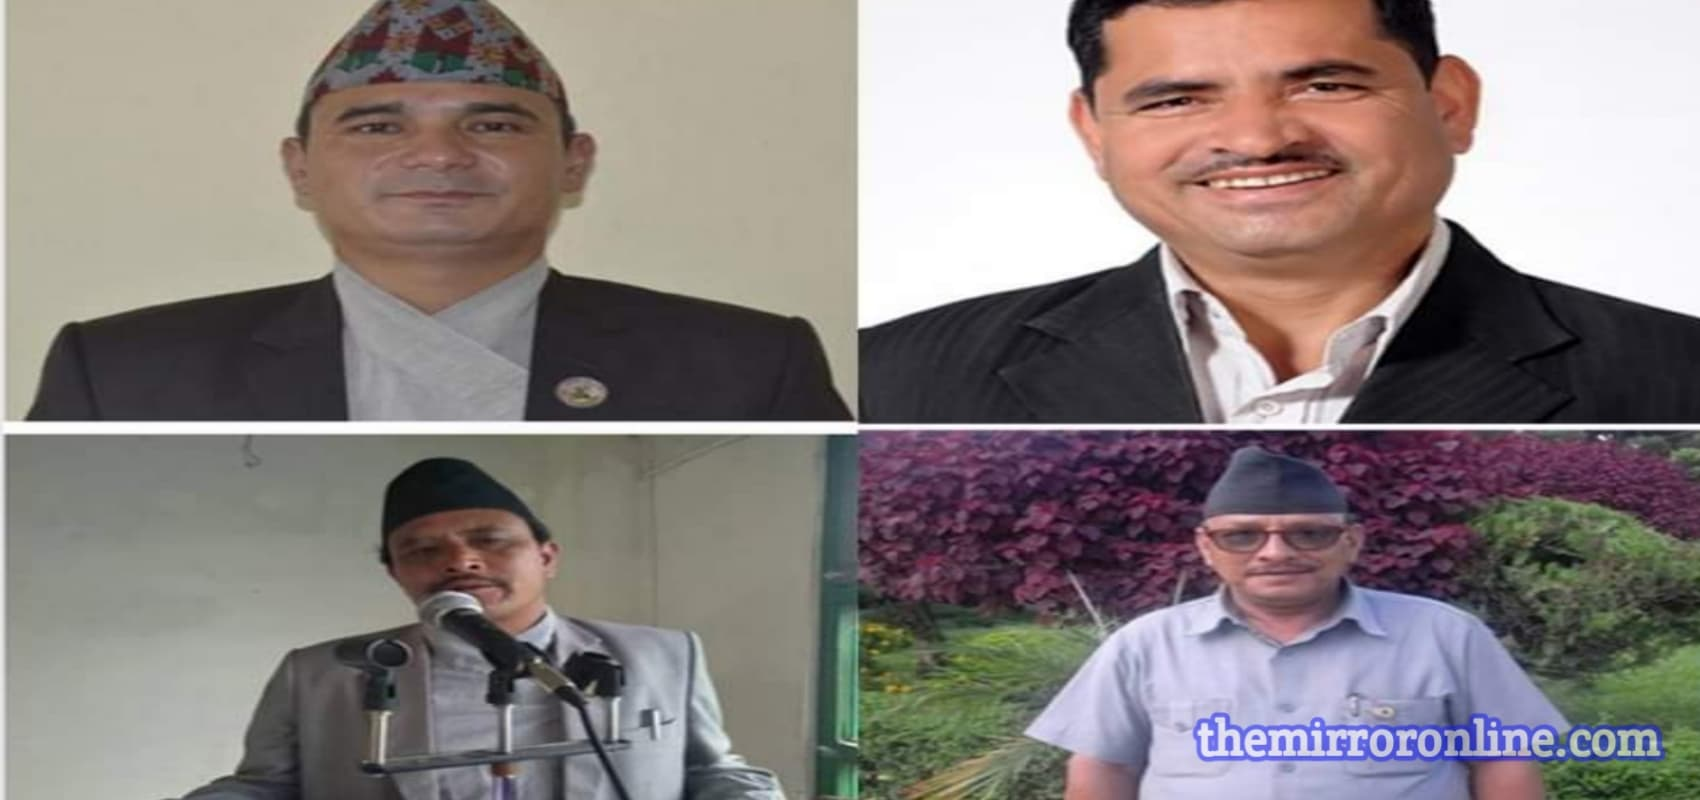 4 uml leaders who did not follow party whip